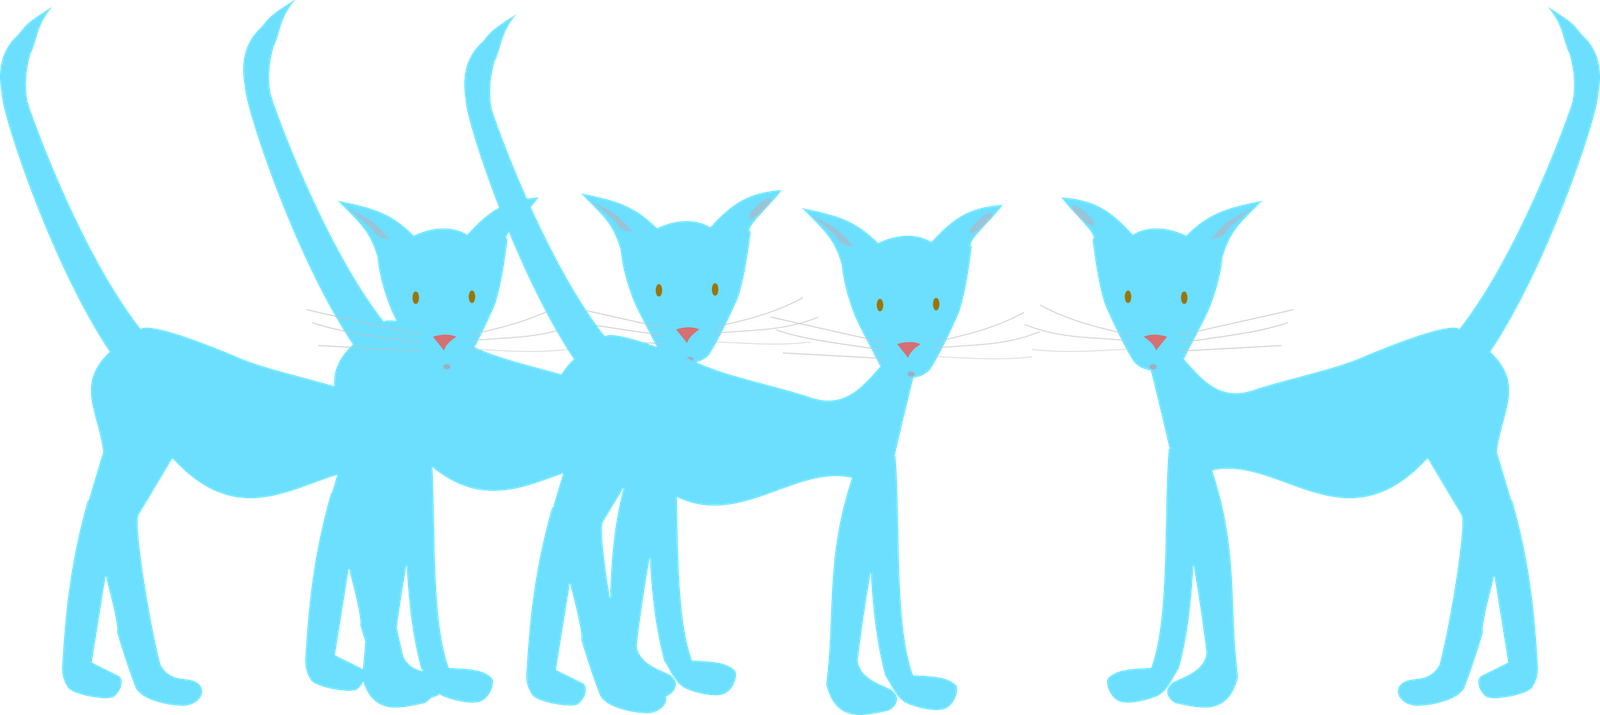 Cat paw clipart navy blue transparent stock Free Cat Images: free digital cat doodle clip art - freebie transparent stock